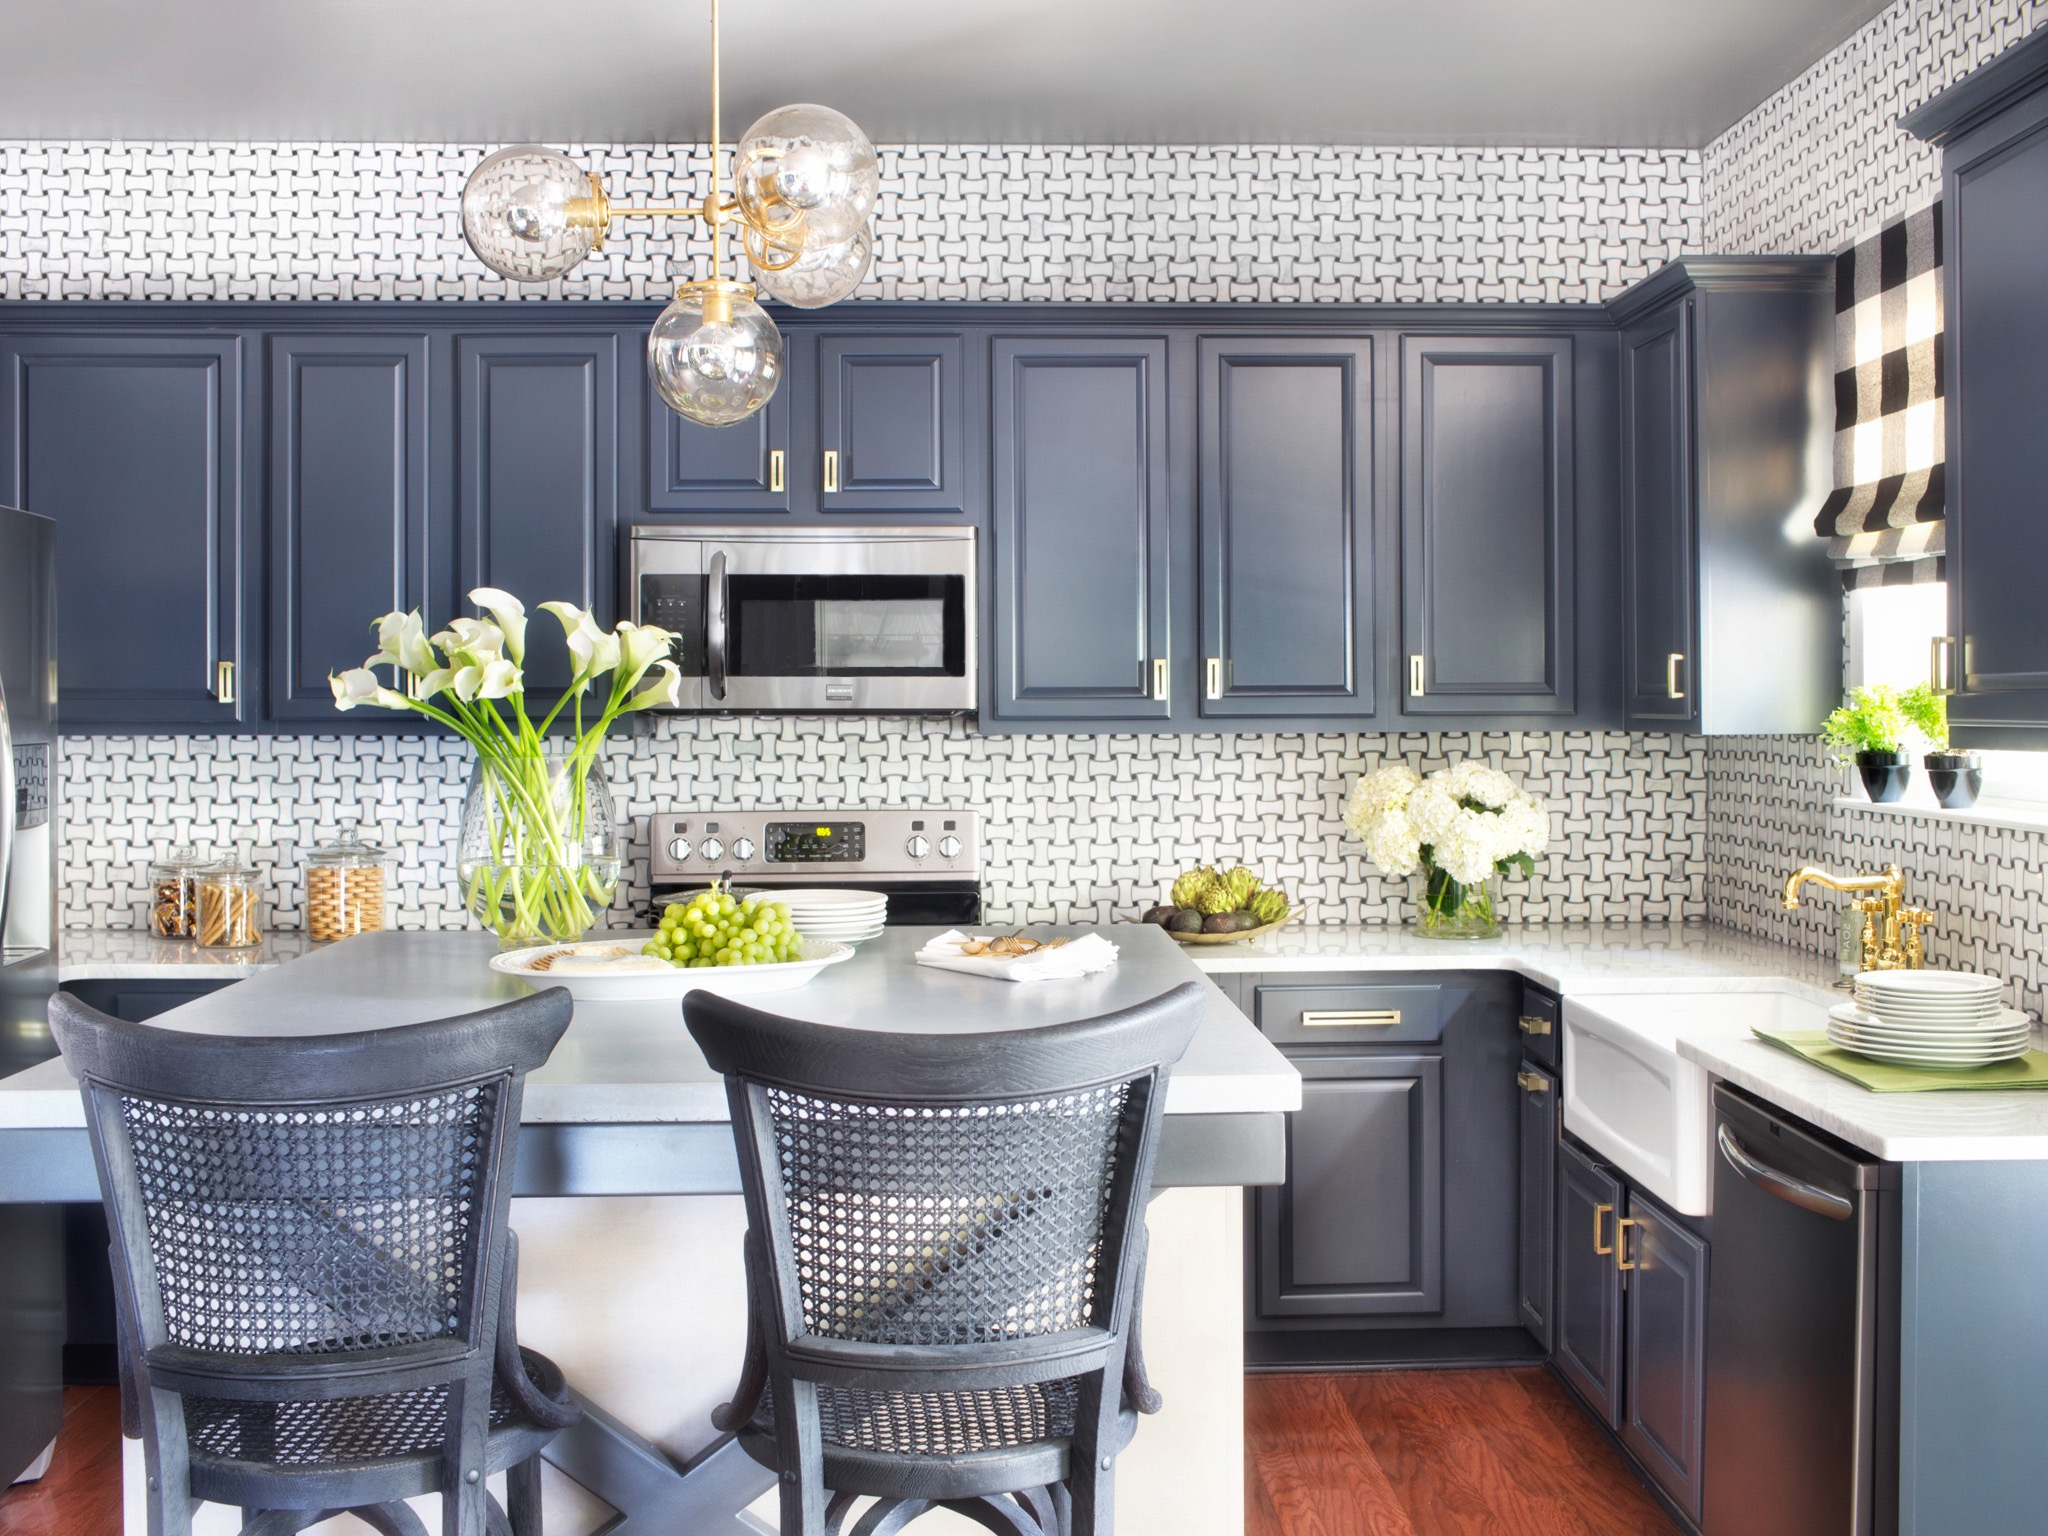 Neutral Gray Cabinets Color For Traditional Kitchen (View 13 of 18)